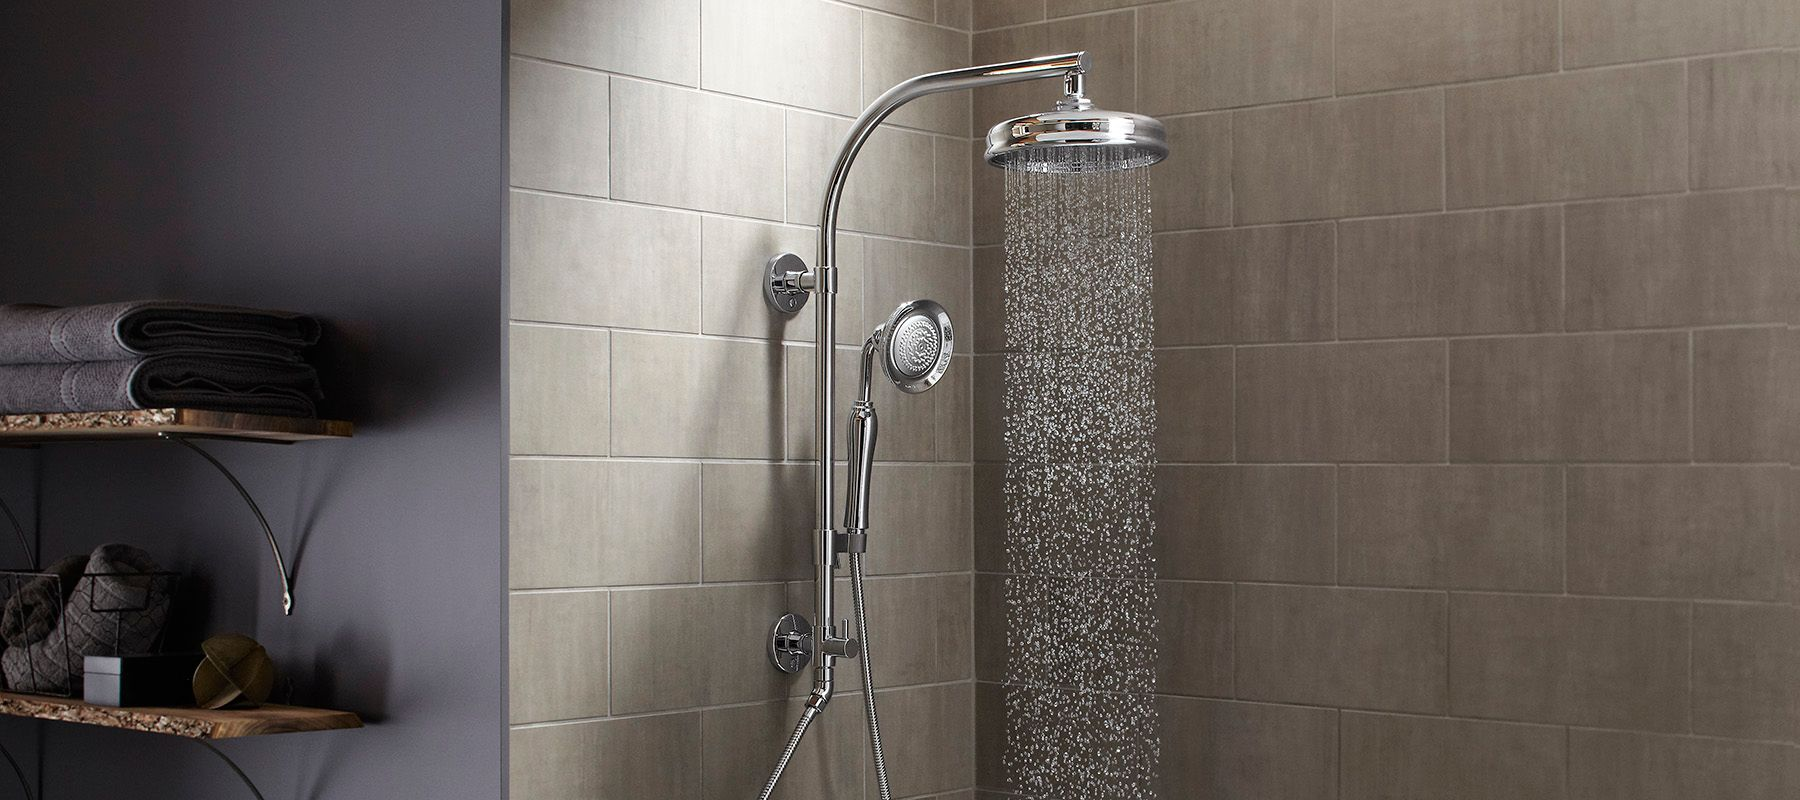 Rainheads Showerheads Handshowers Bodysprays Showering